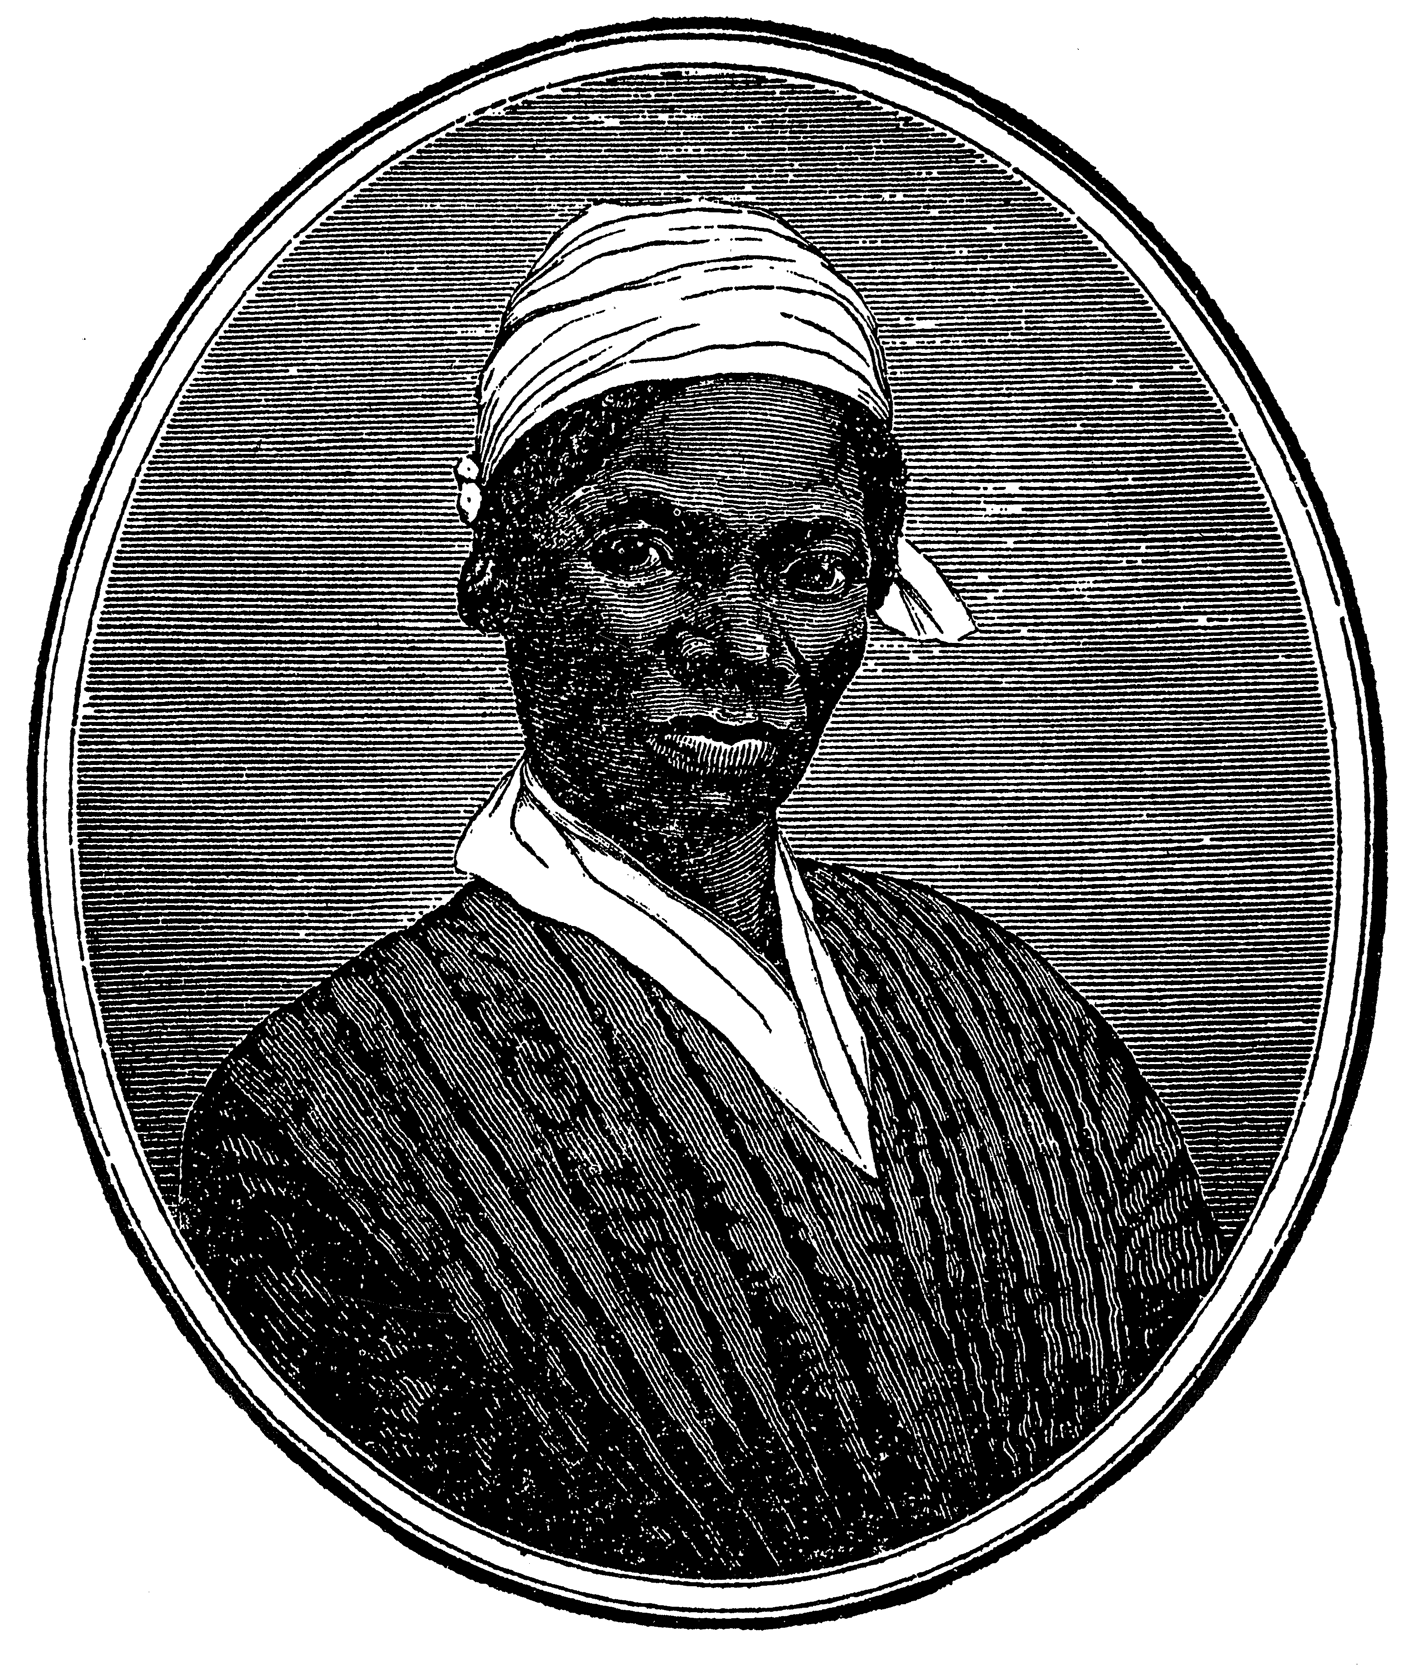 the story of slave named isabella baumfree in sojourner truth It was titled narrative of sojourner truth and contained stories from the life of isabella baumfree, who later changed her slave name to truth  in one rousing story, sojourner met.